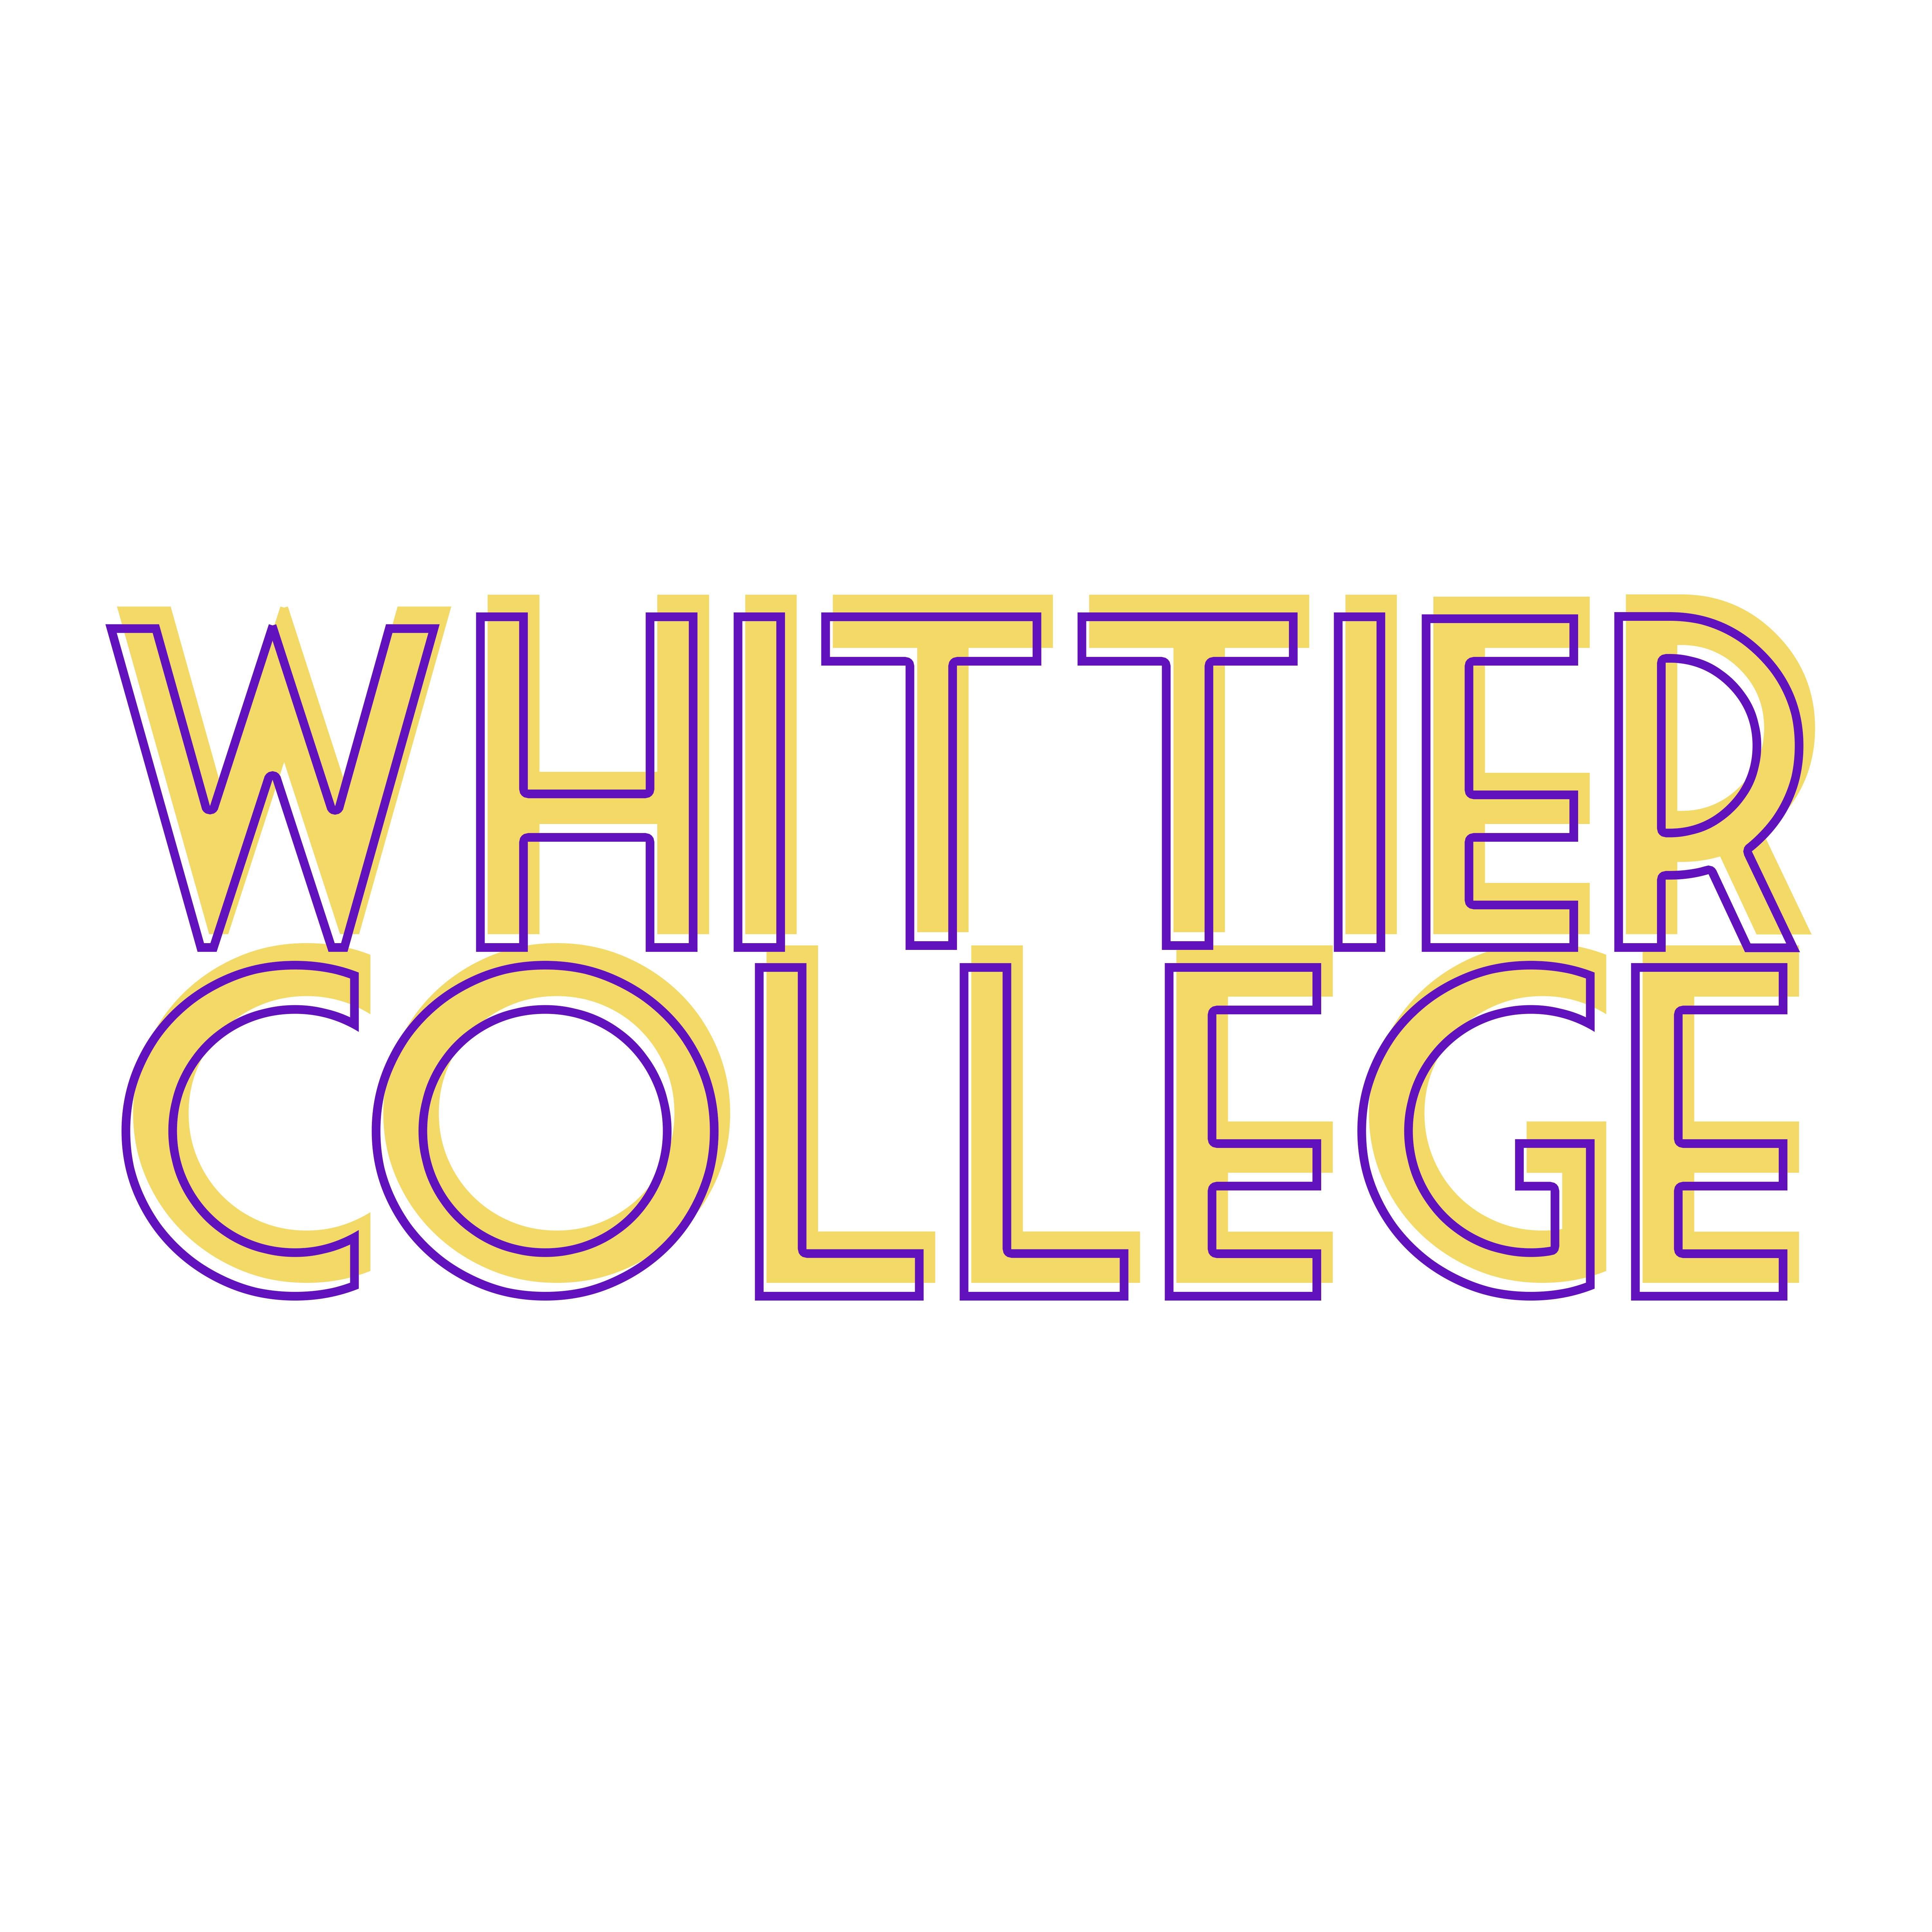 703370d108 Whittier College! Click the link in my bio to shop this design and many  others.  WhittierCollege  stickers  collegestickers  whittiercollegeswim ...